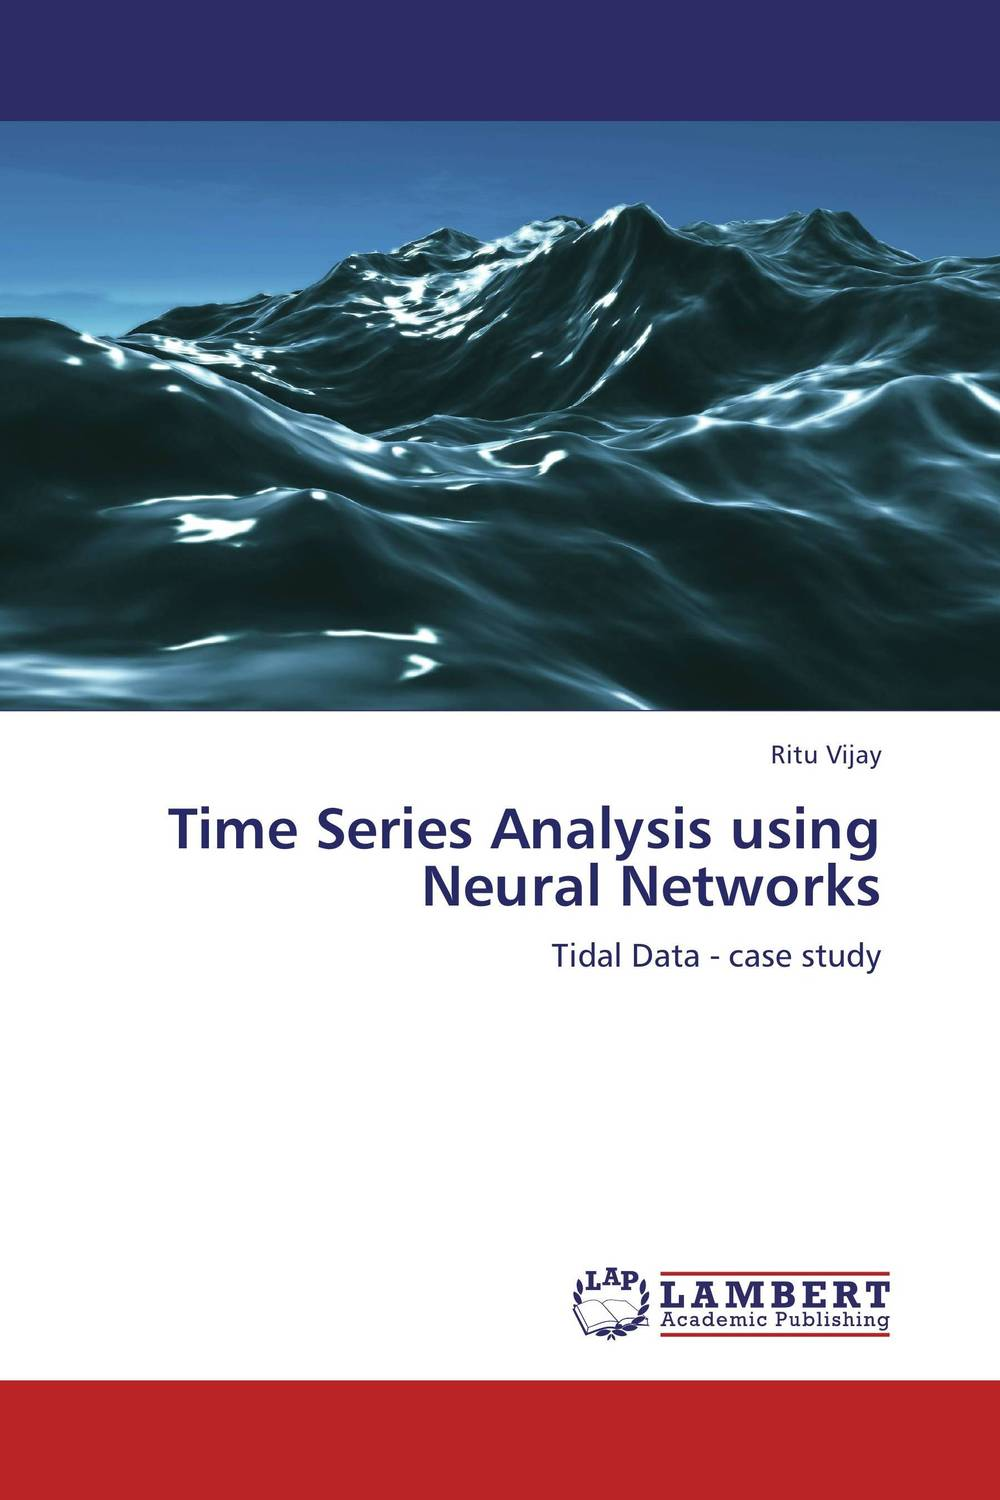 Time Series Analysis using Neural Networks dhl ems fedex ya001